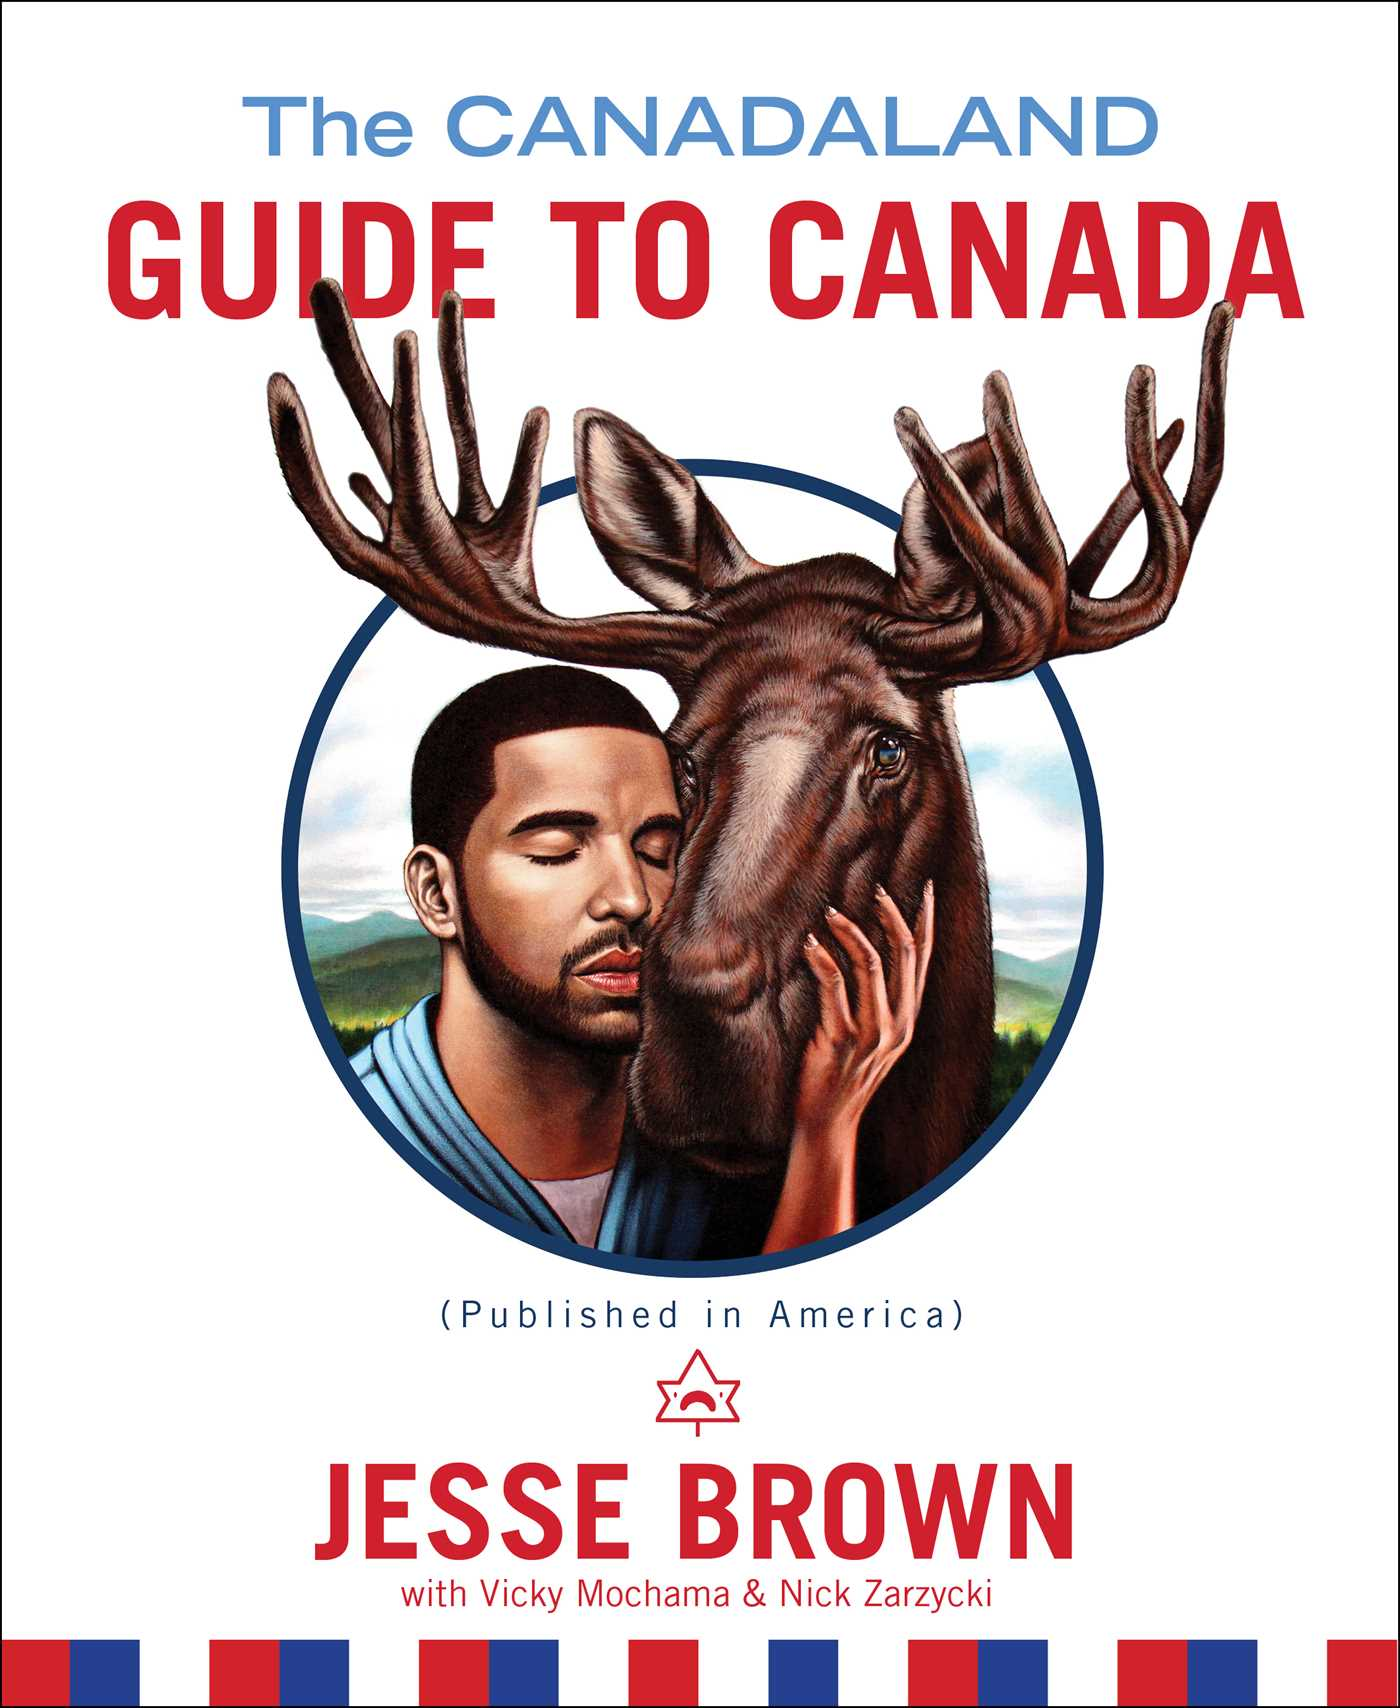 The canadaland guide to canada 9781501150654 hr